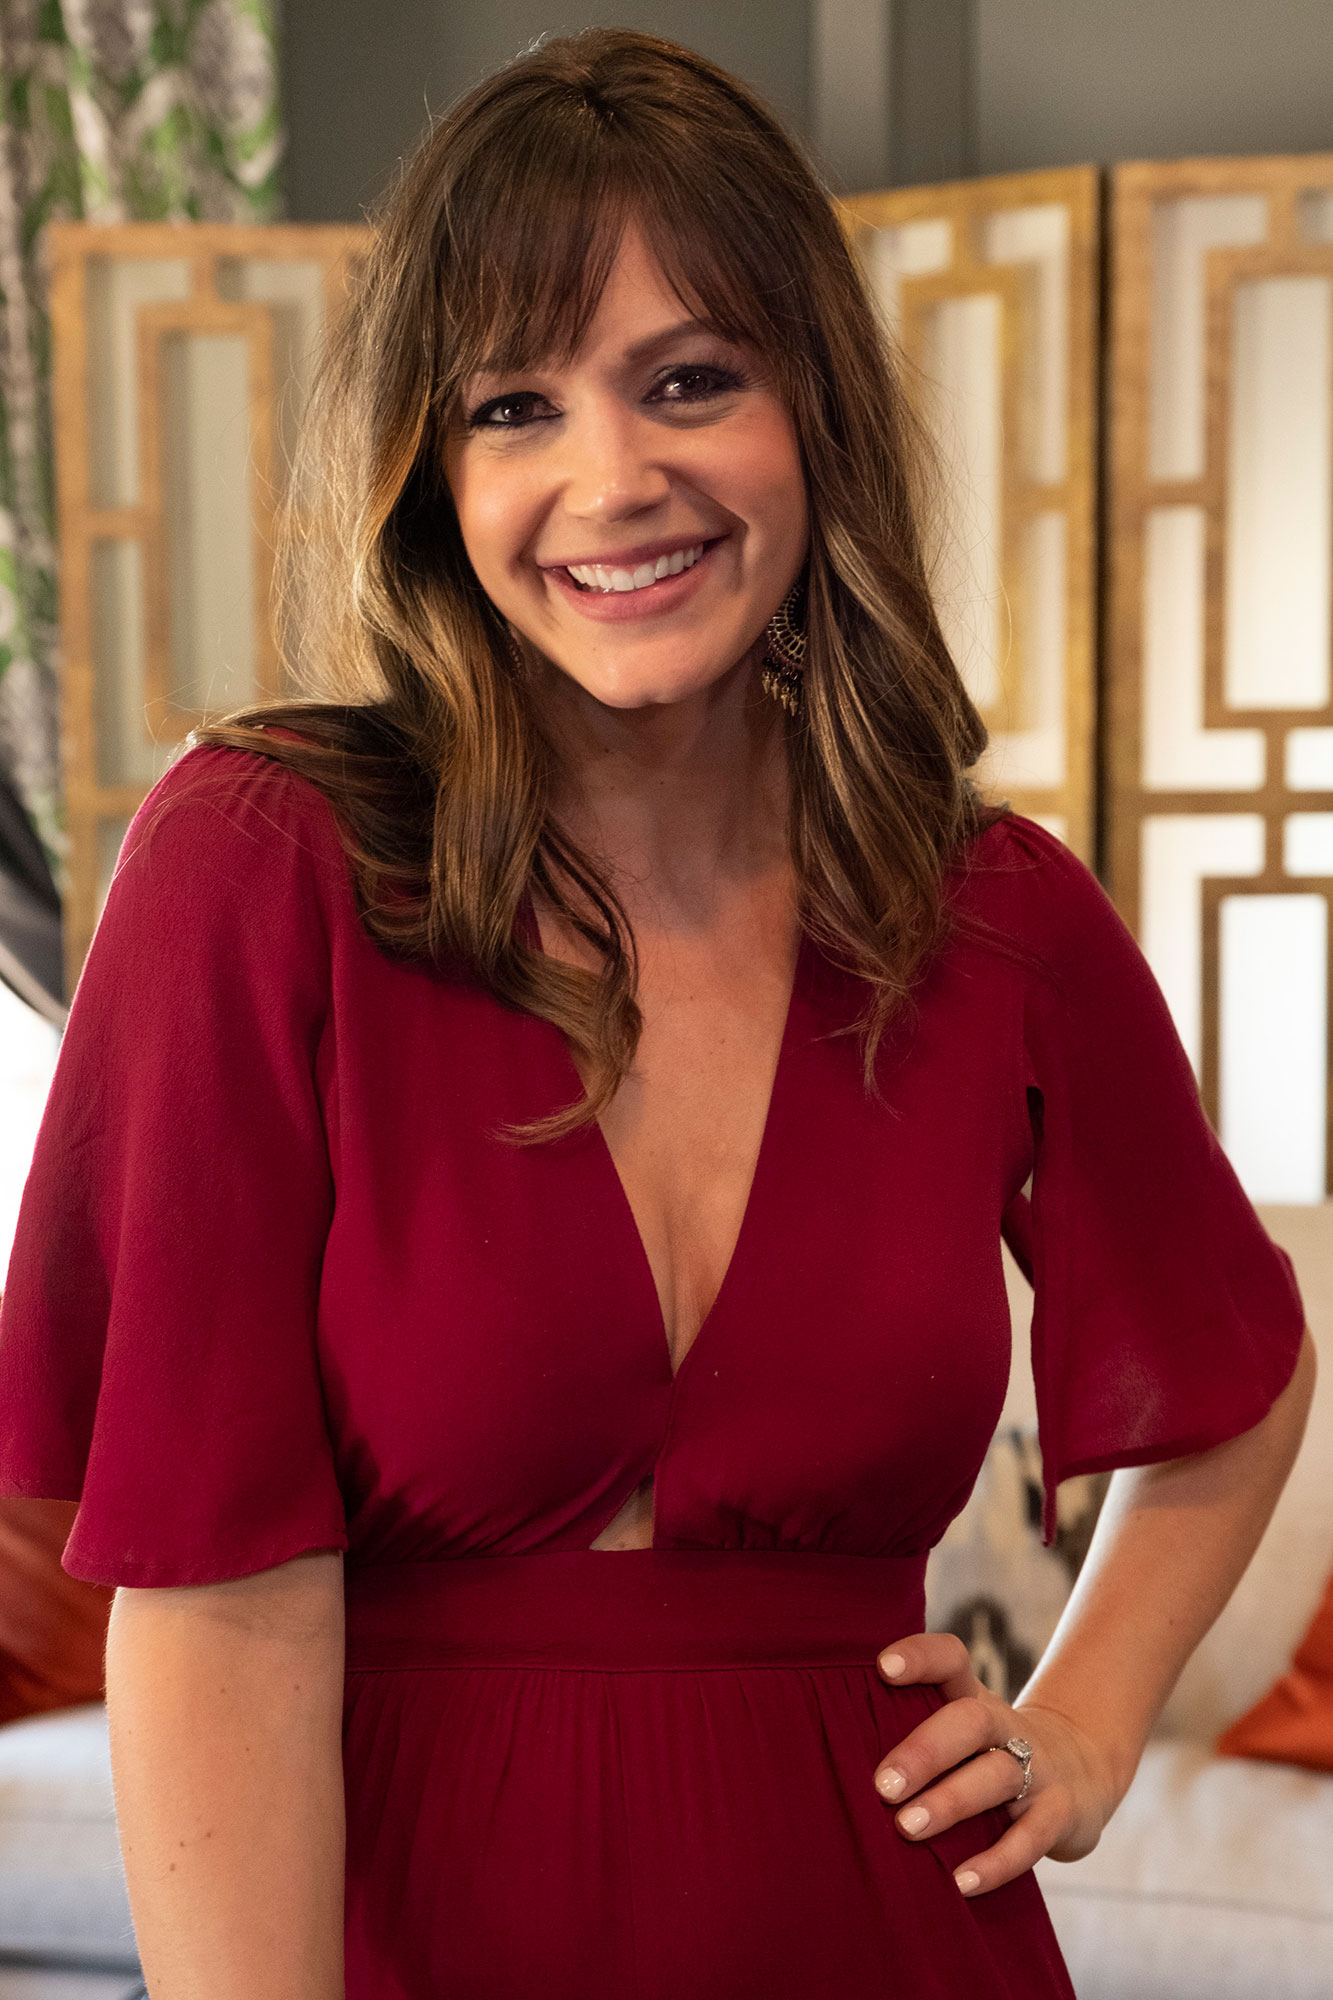 """Desiree Hartsock """"Bachelorette Reunion: The Biggest Bachelorette Reunion in Bachelor History Ever!"""" - Hartsock, 33, married her final pick, Chris Siegfried , in January 2015. The couple are parents of sons Asher, 2, and Zander, 3 months."""